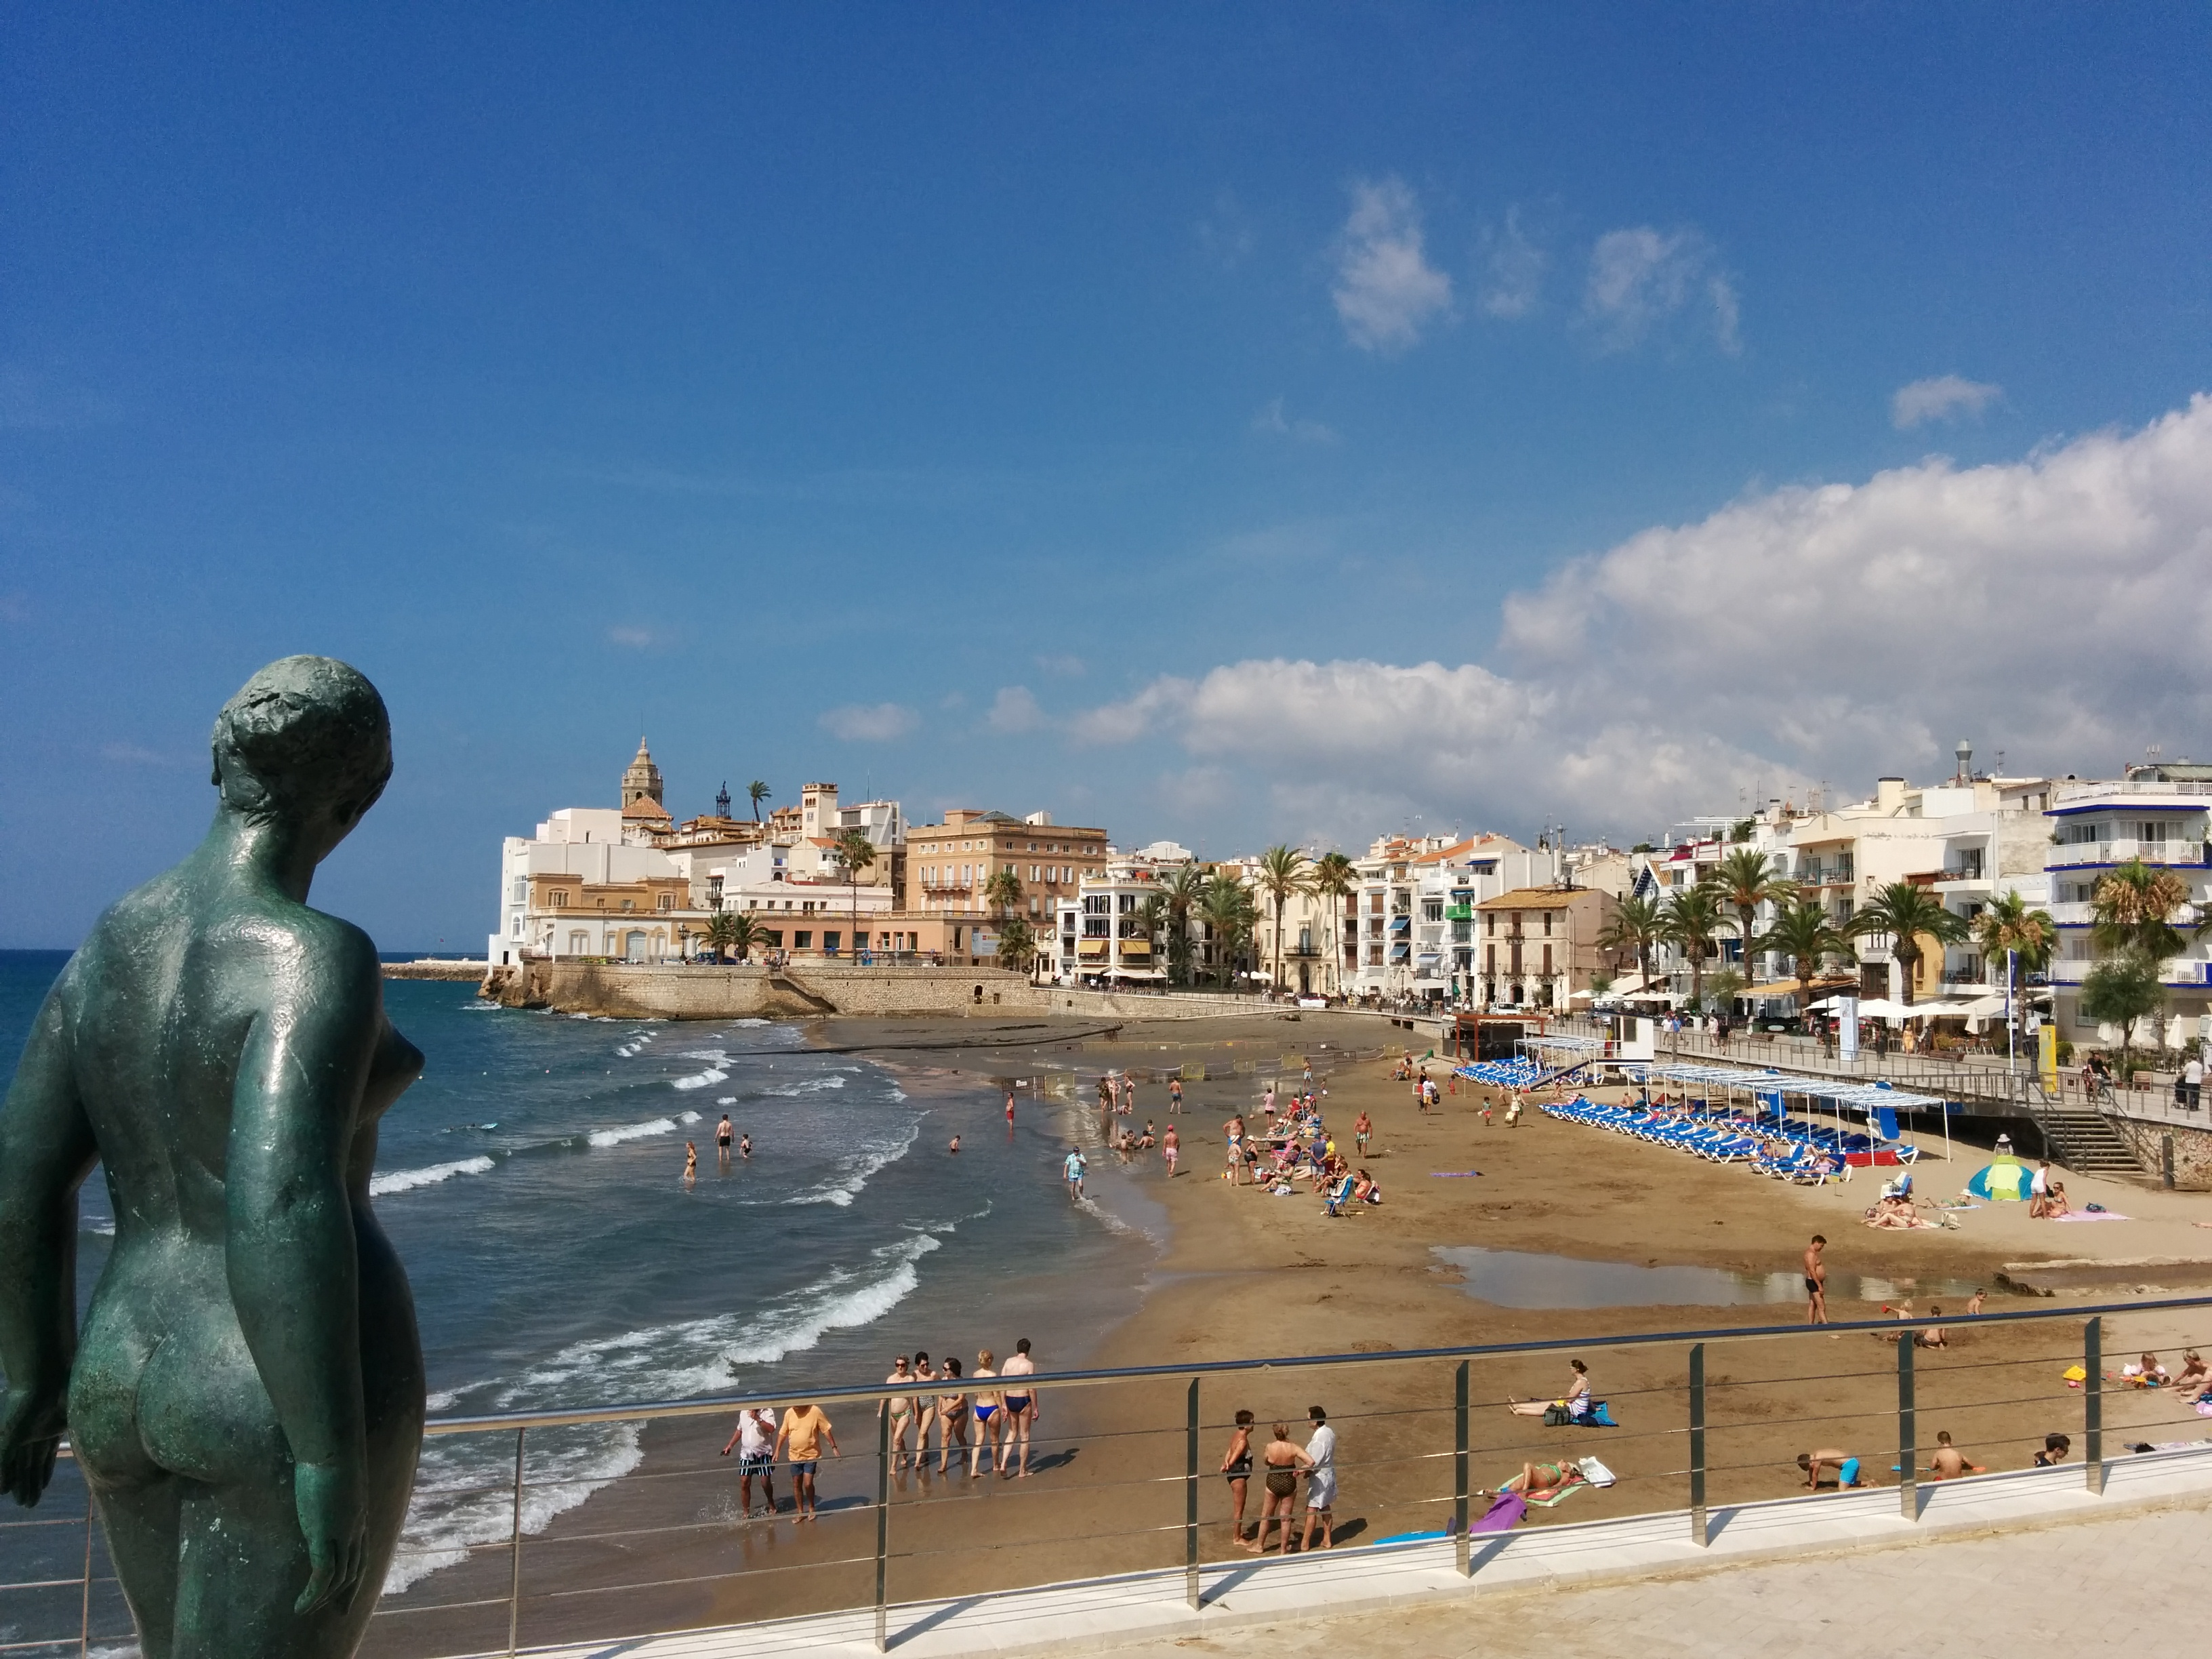 Fishermen's houses, the sea and colonial buildings in Sitges